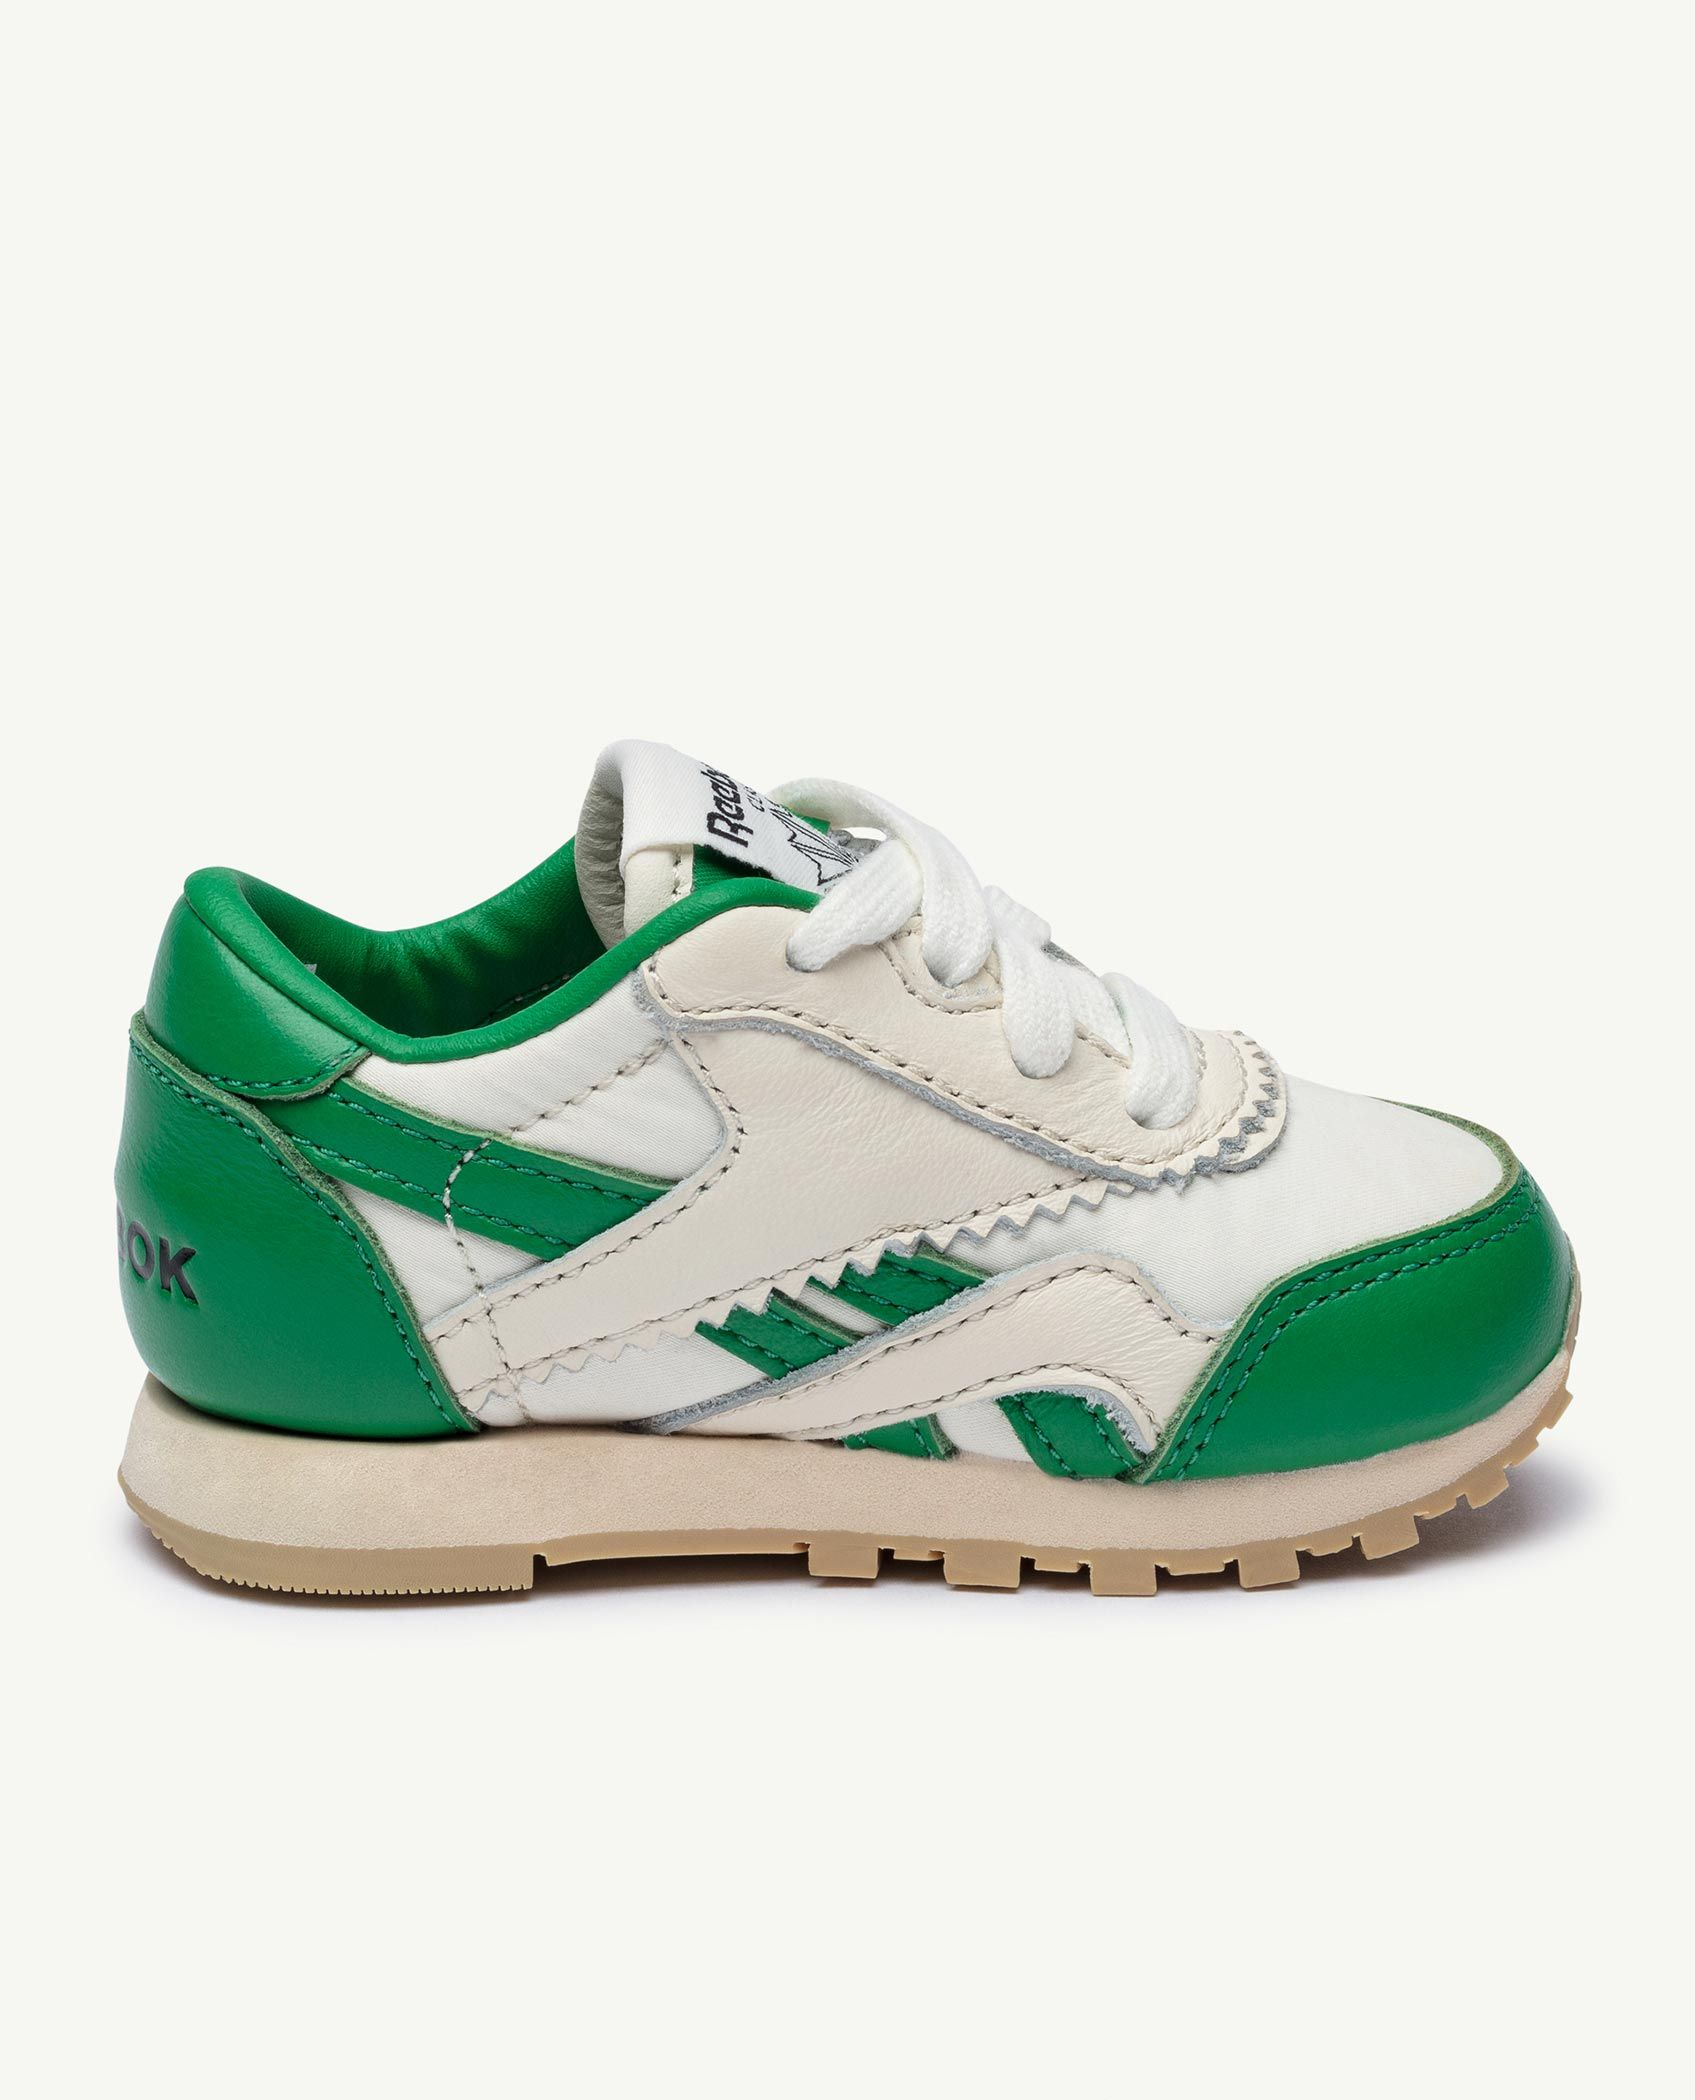 Reebok x The Animals Observatory Classic Nylon Green Baby img-2